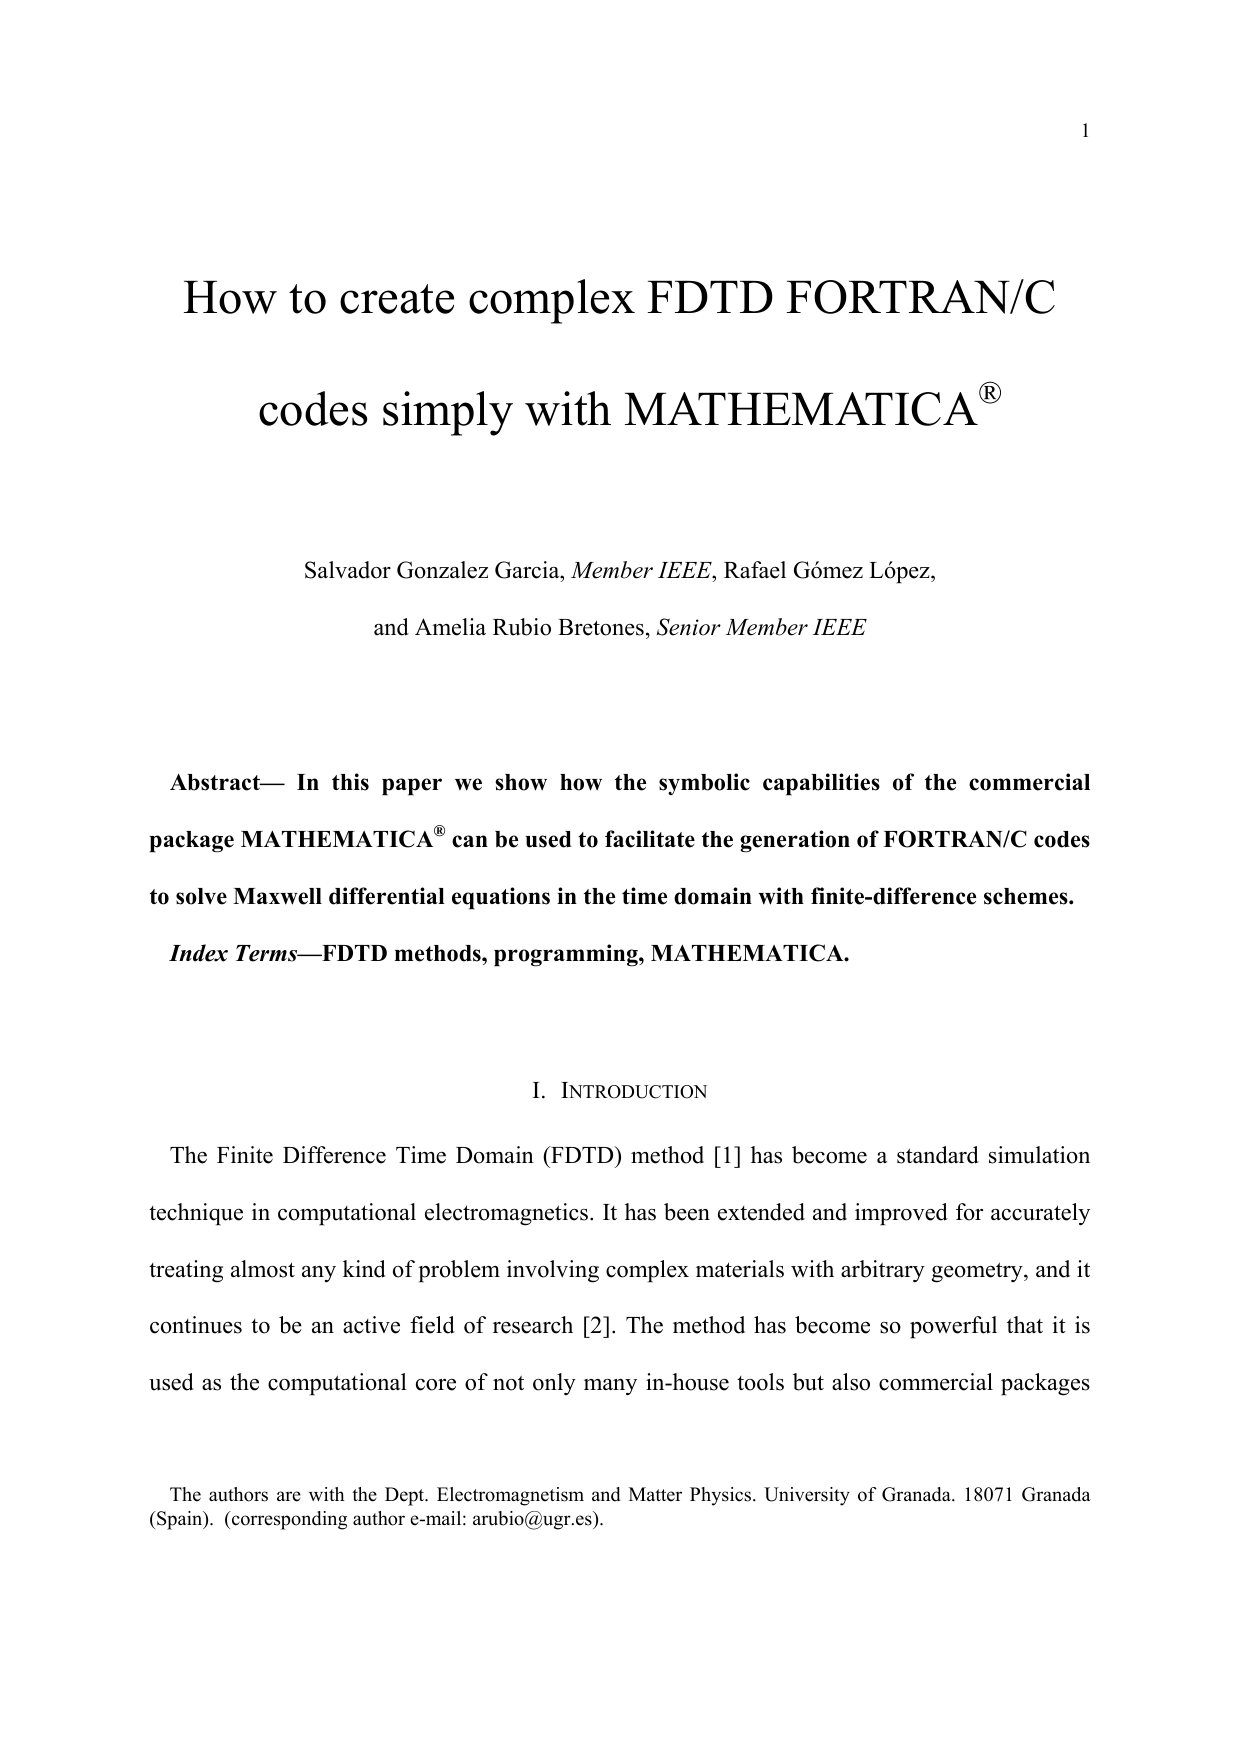 How to create complex FDTD FORTRAN/C codes simply with